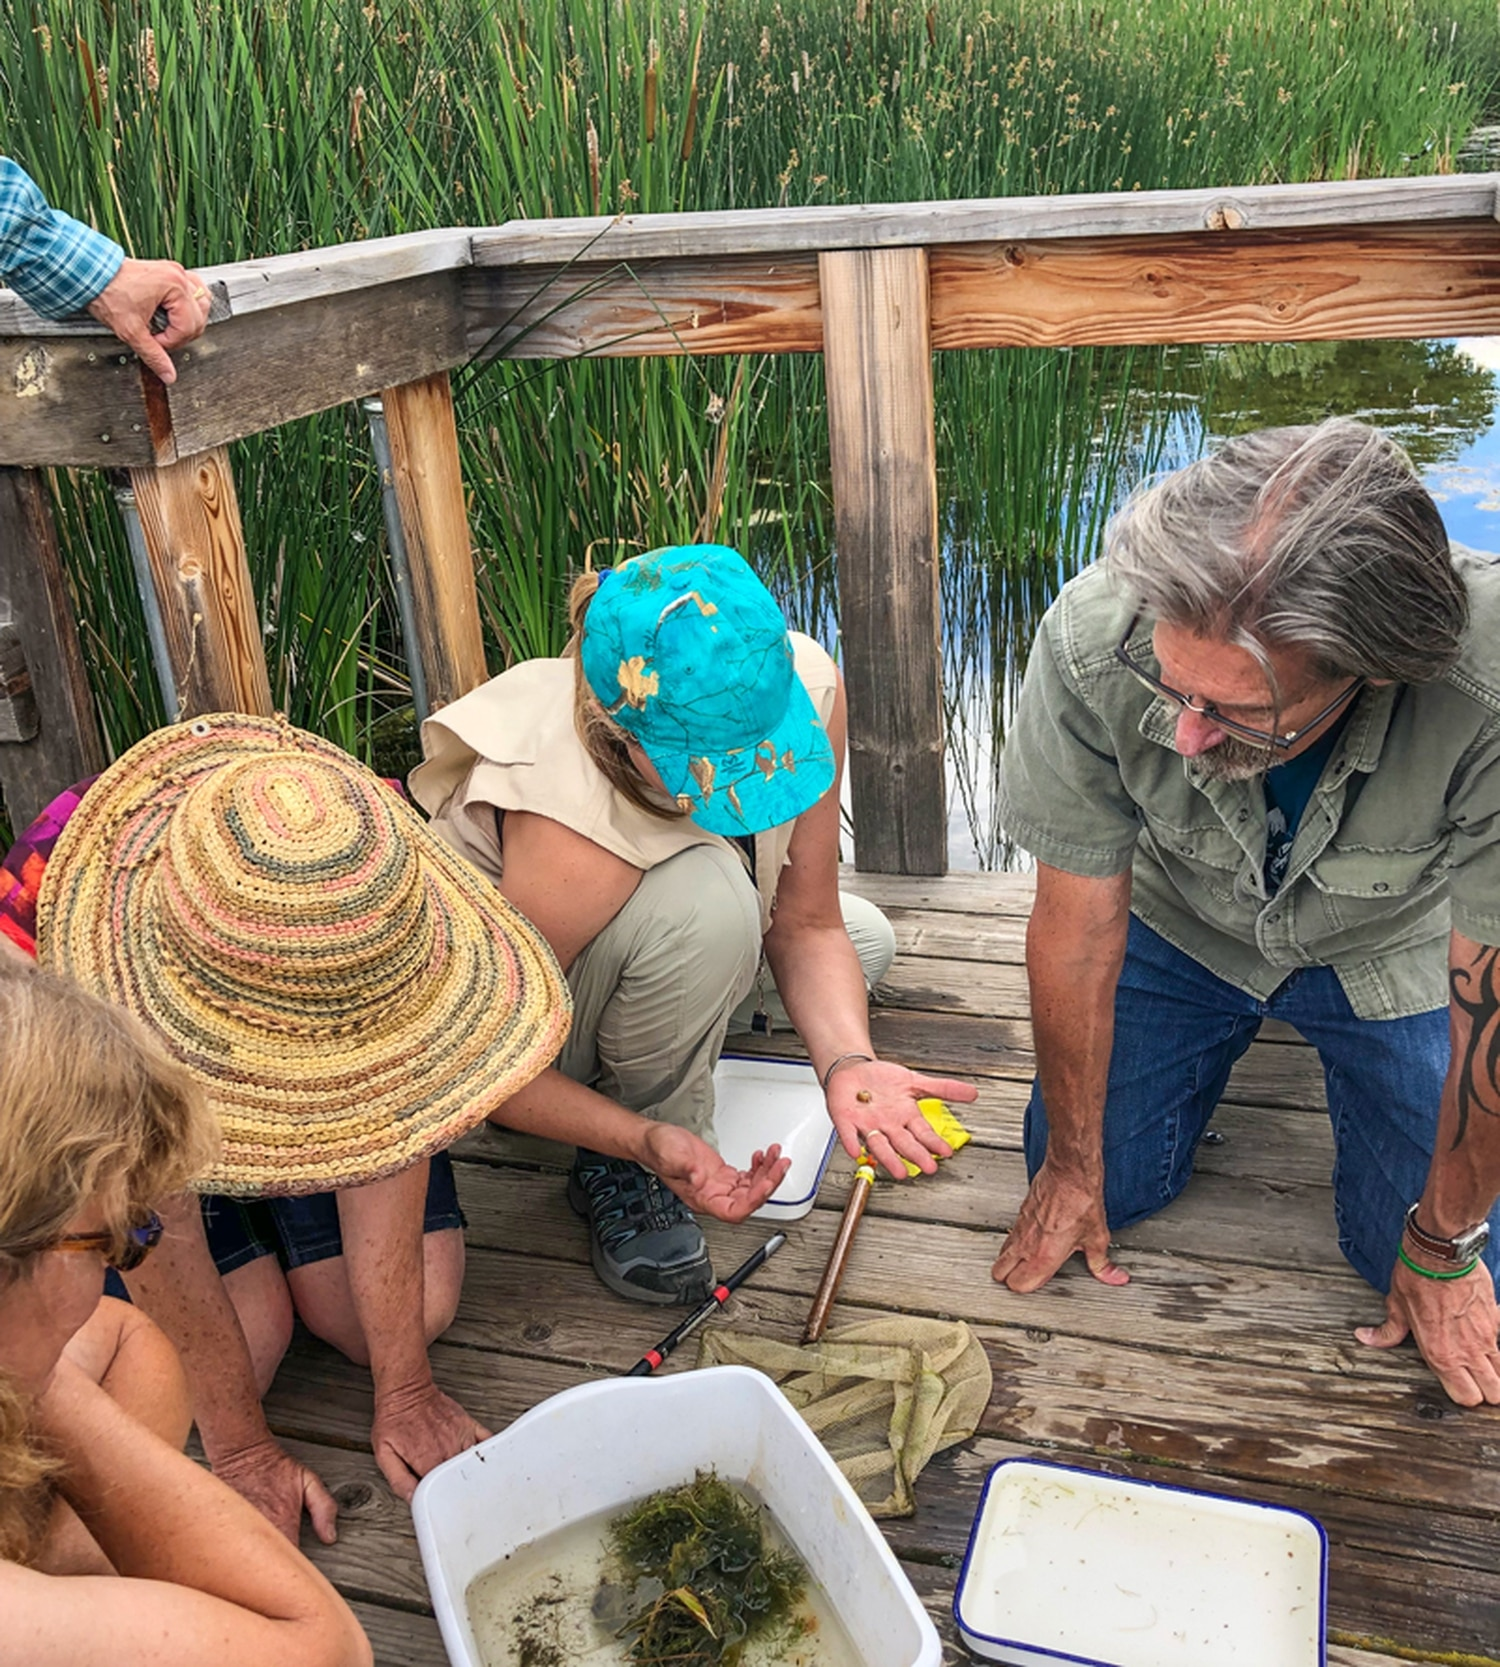 Wetland scientist Jeff Depew identifies various aquatic critters scooped from the pond during an exploration class at Leonora Curtin Wetlands Preserve.